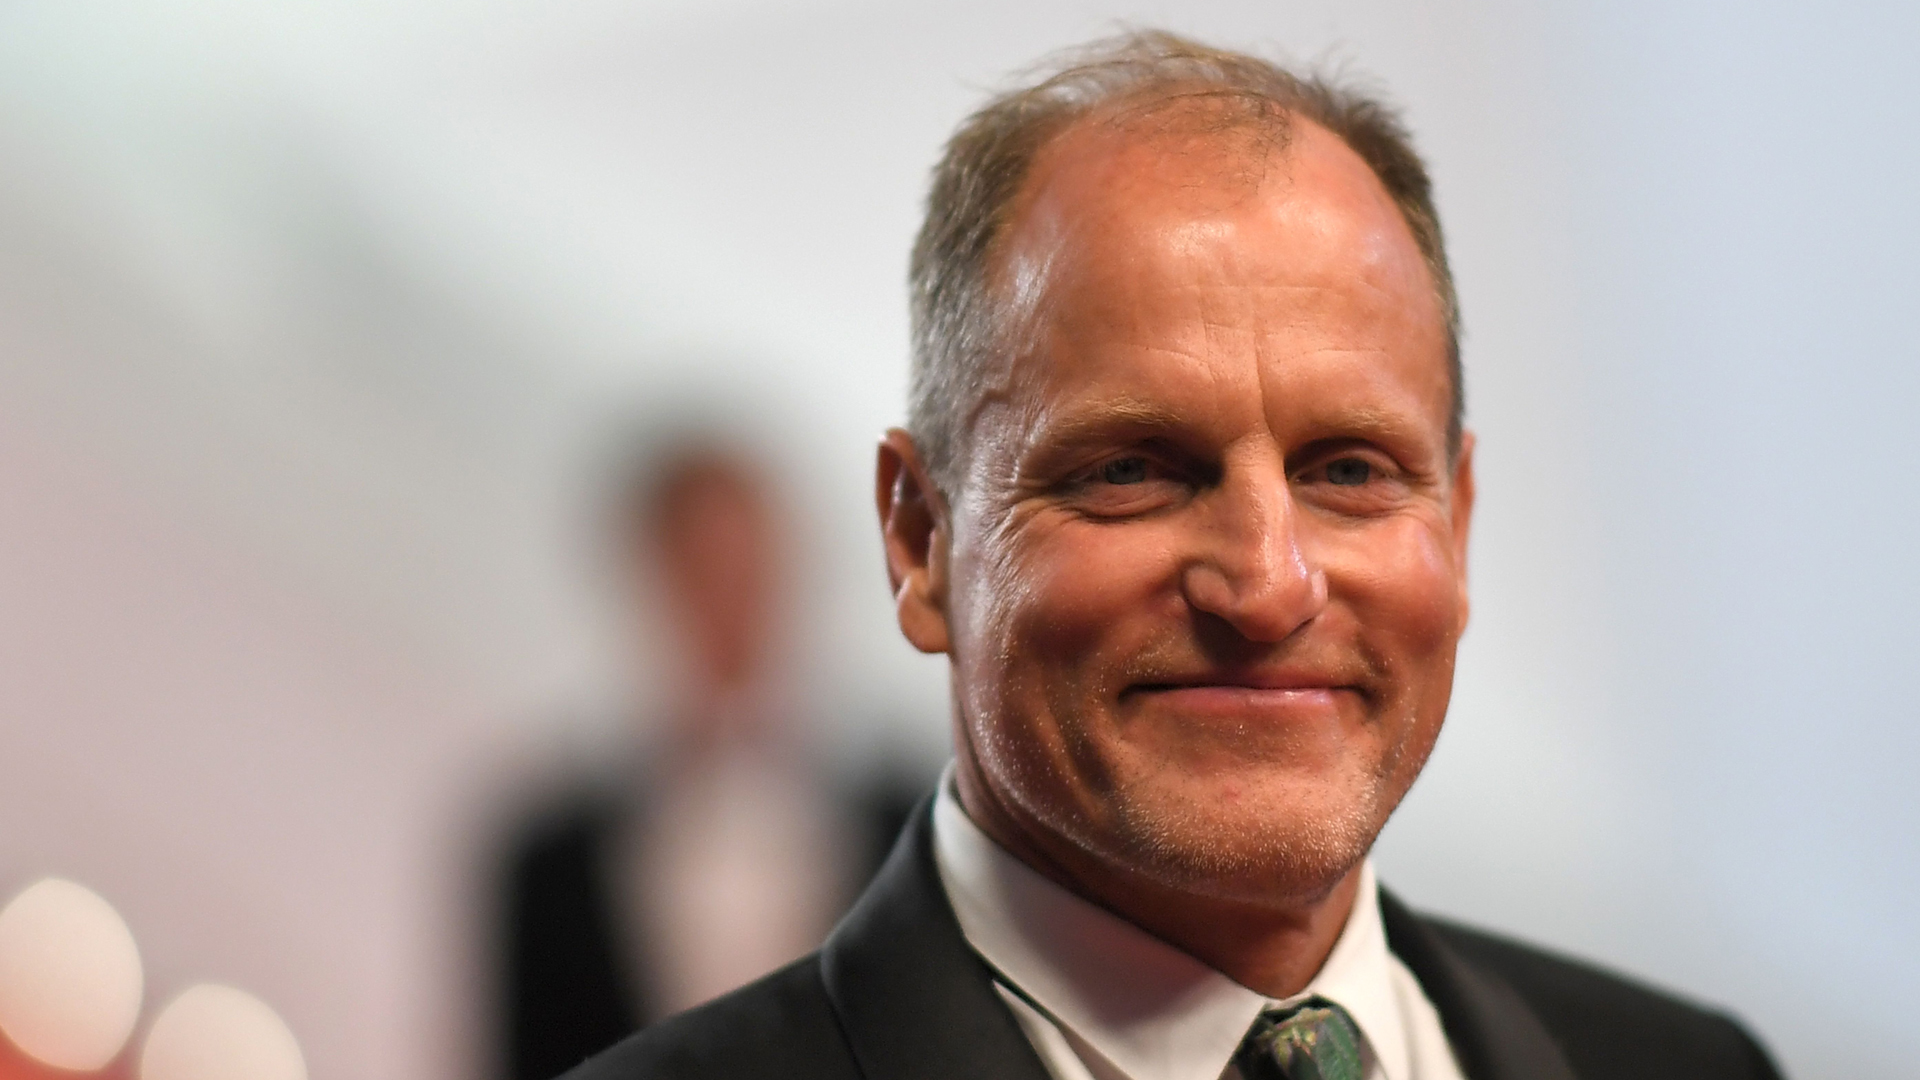 Actor Woody Harrelson poses as he leaves the Festival Palace on May 15, 2018. (Credit: LOIC VENANCE/AFP/Getty Images)